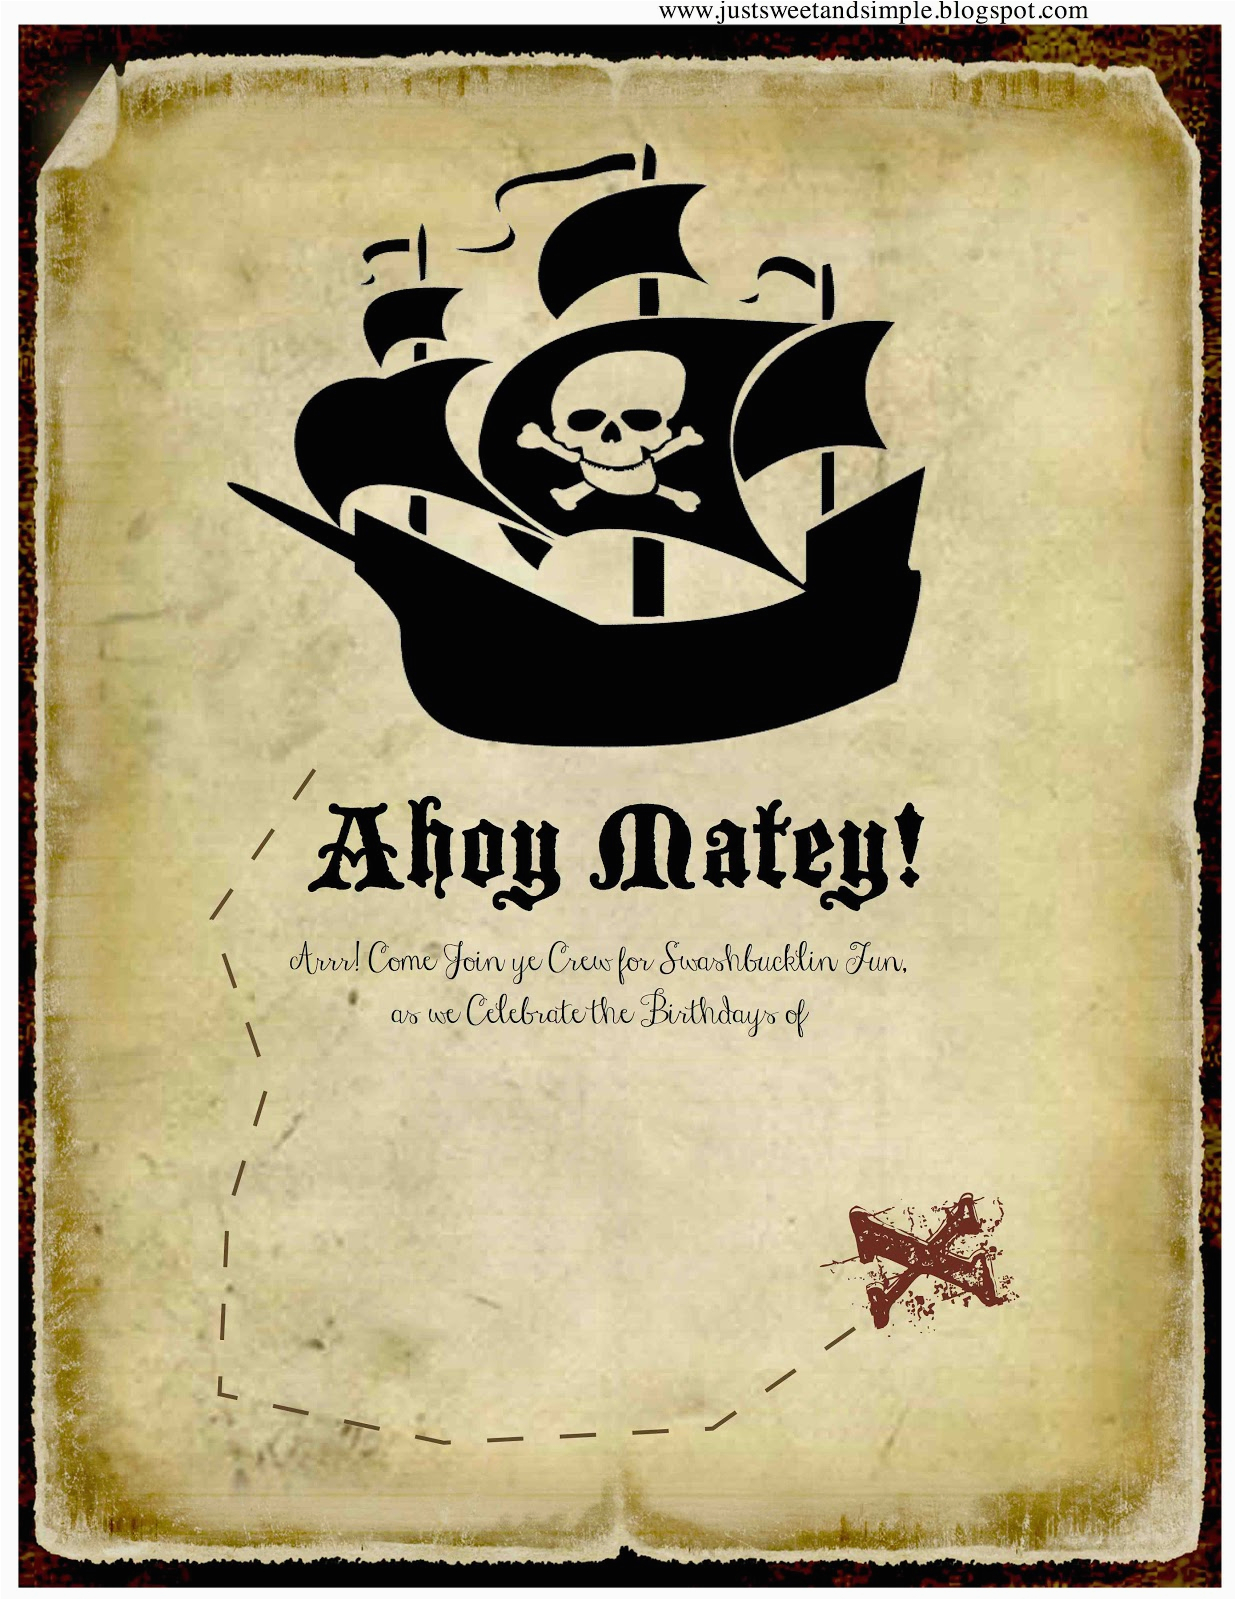 Pirate Themed Birthday Party Invitations Just Sweet And Simple